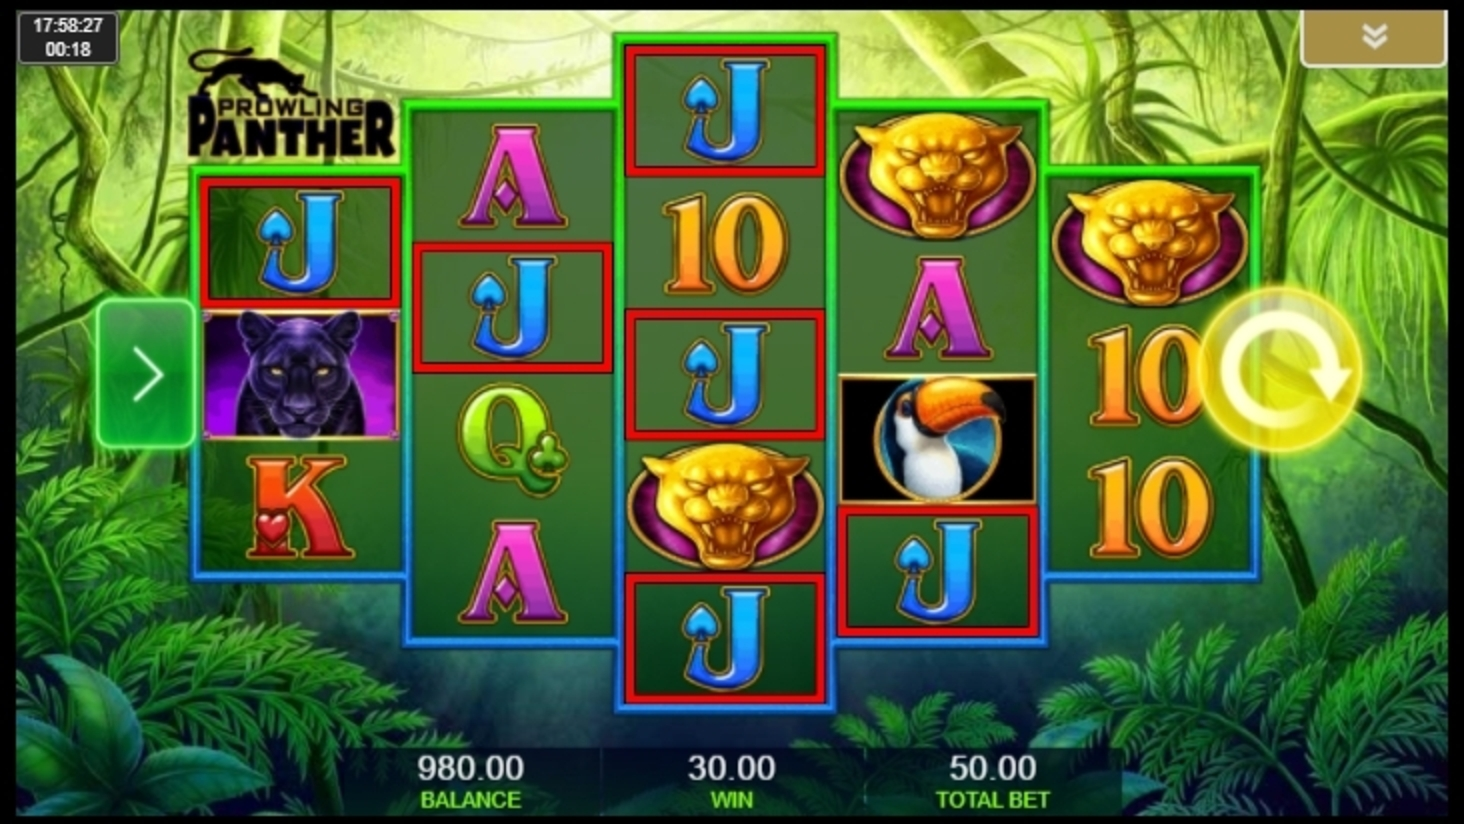 Win Money in Prowling Panther Free Slot Game by IGT